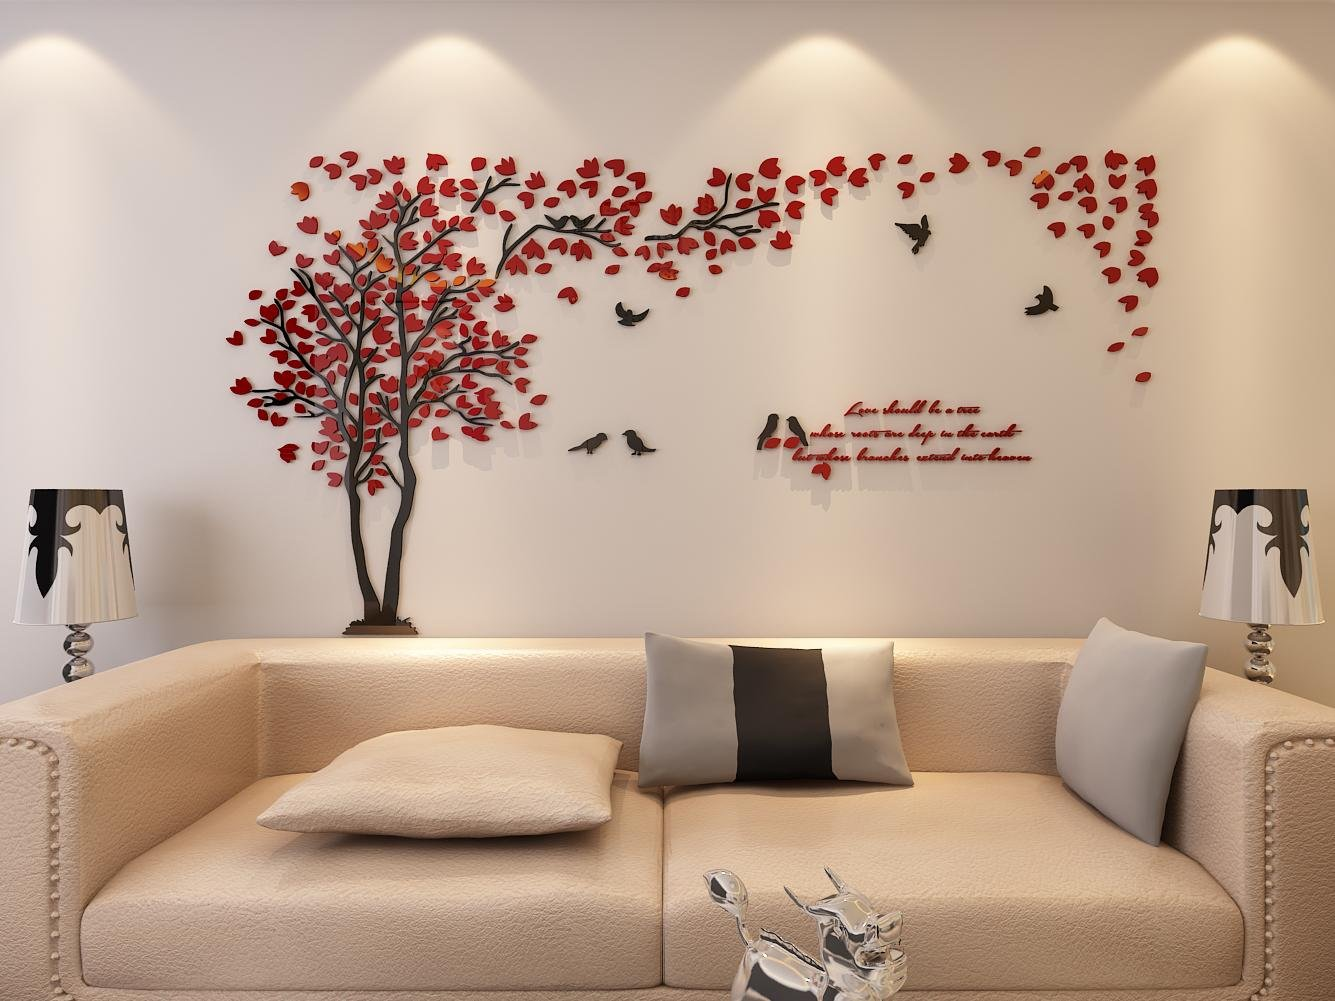 Galleon 3d couple tree wall murals for living room - Wall sticker ideas for living room ...